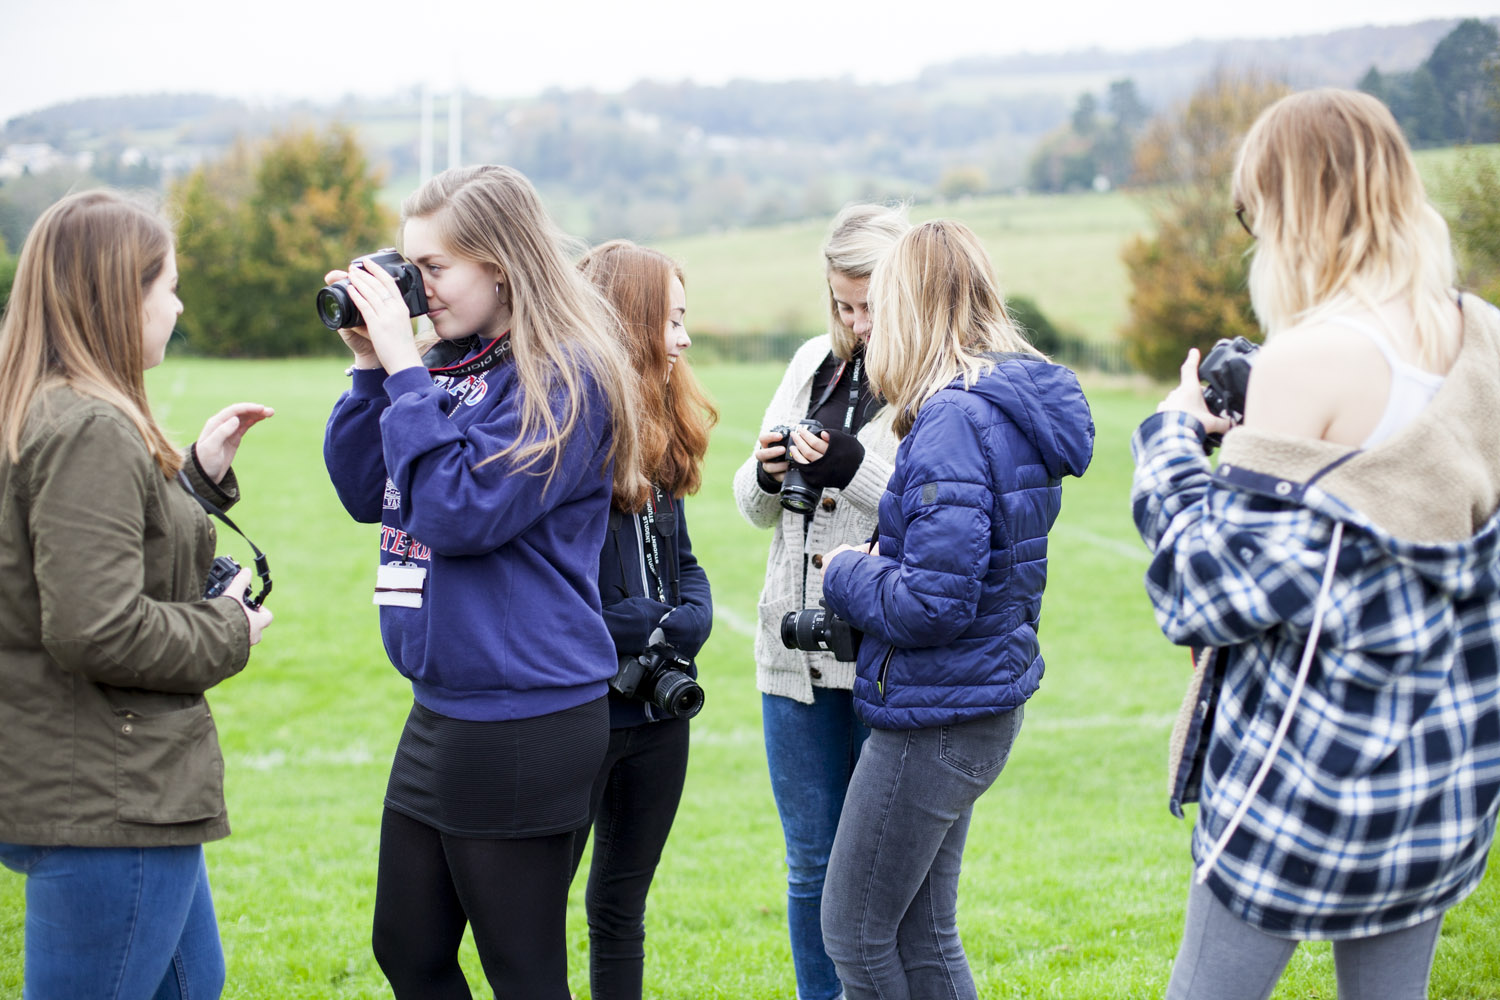 Mindful photography workshop at Archway School in Stroud